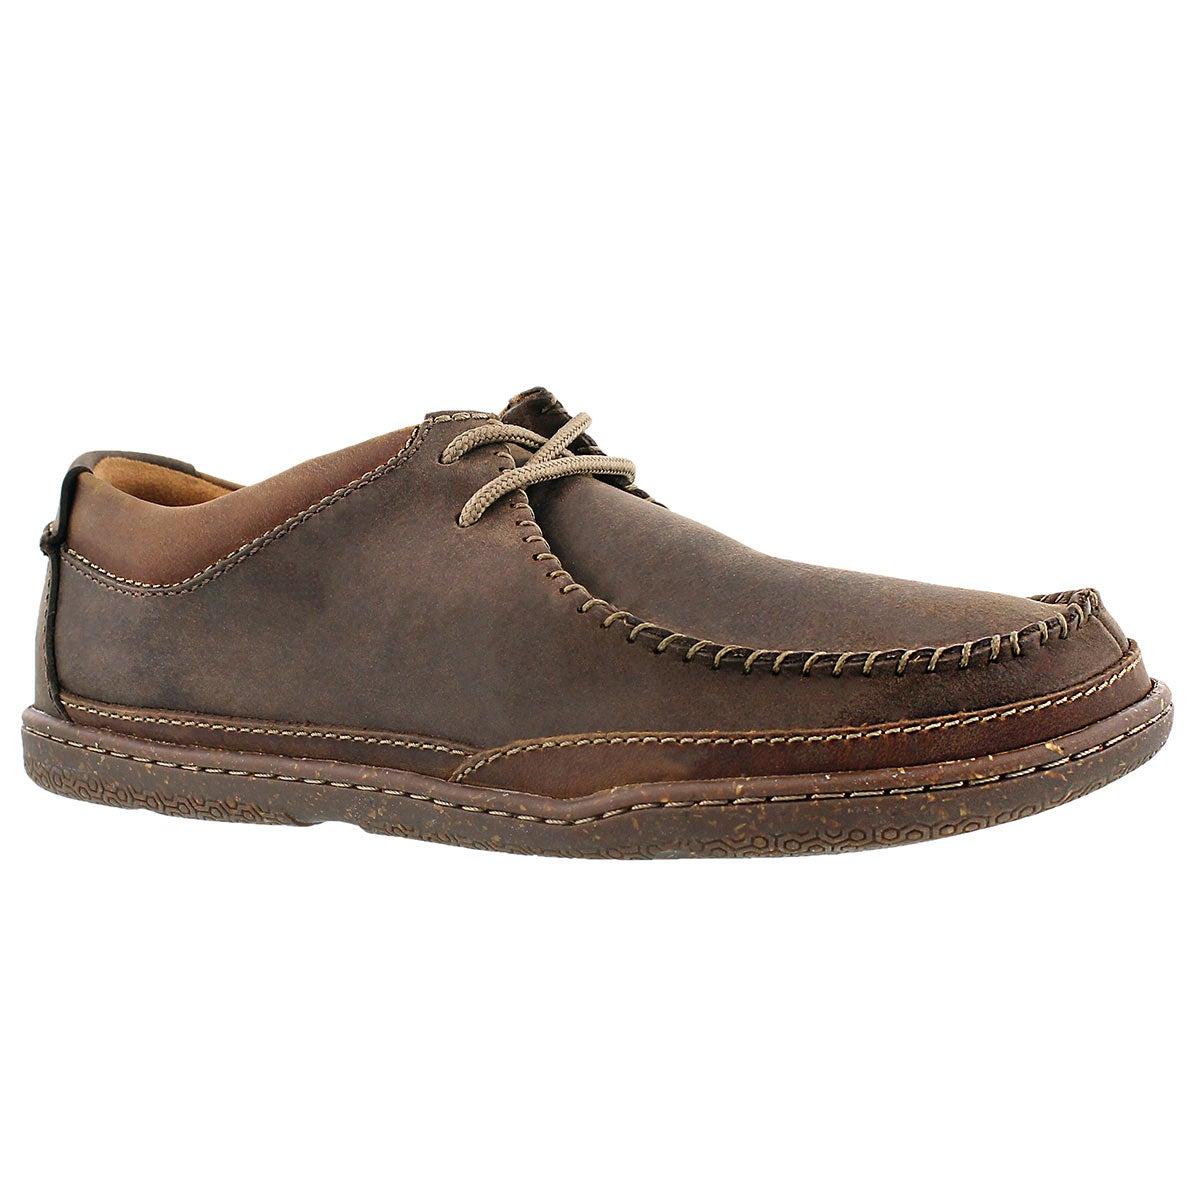 Mns Trapell Pace brown casual lace up